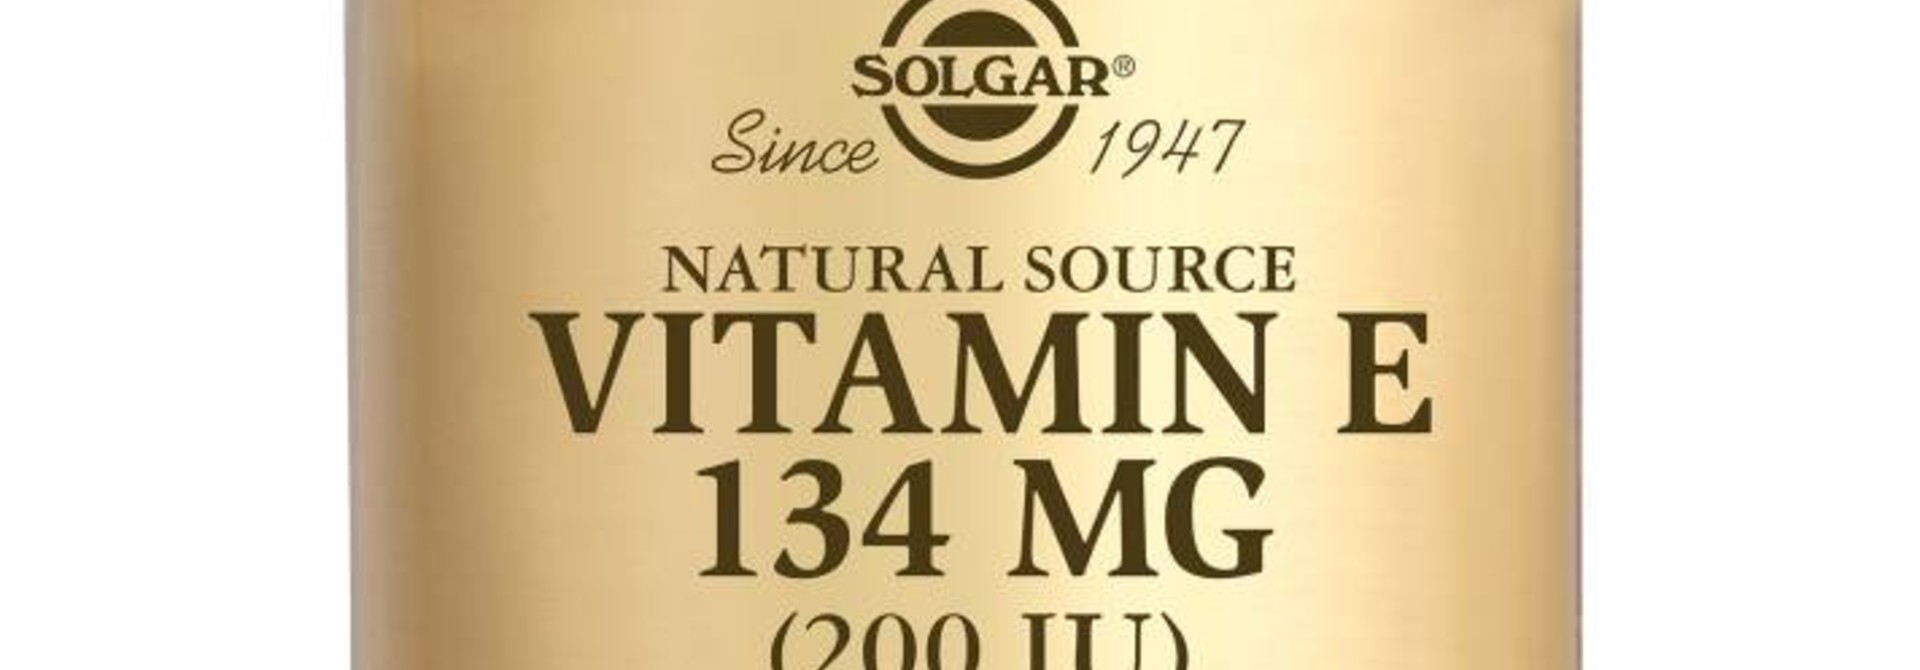 Vitamin E 134 mg/200 IU Complex 250 softgels